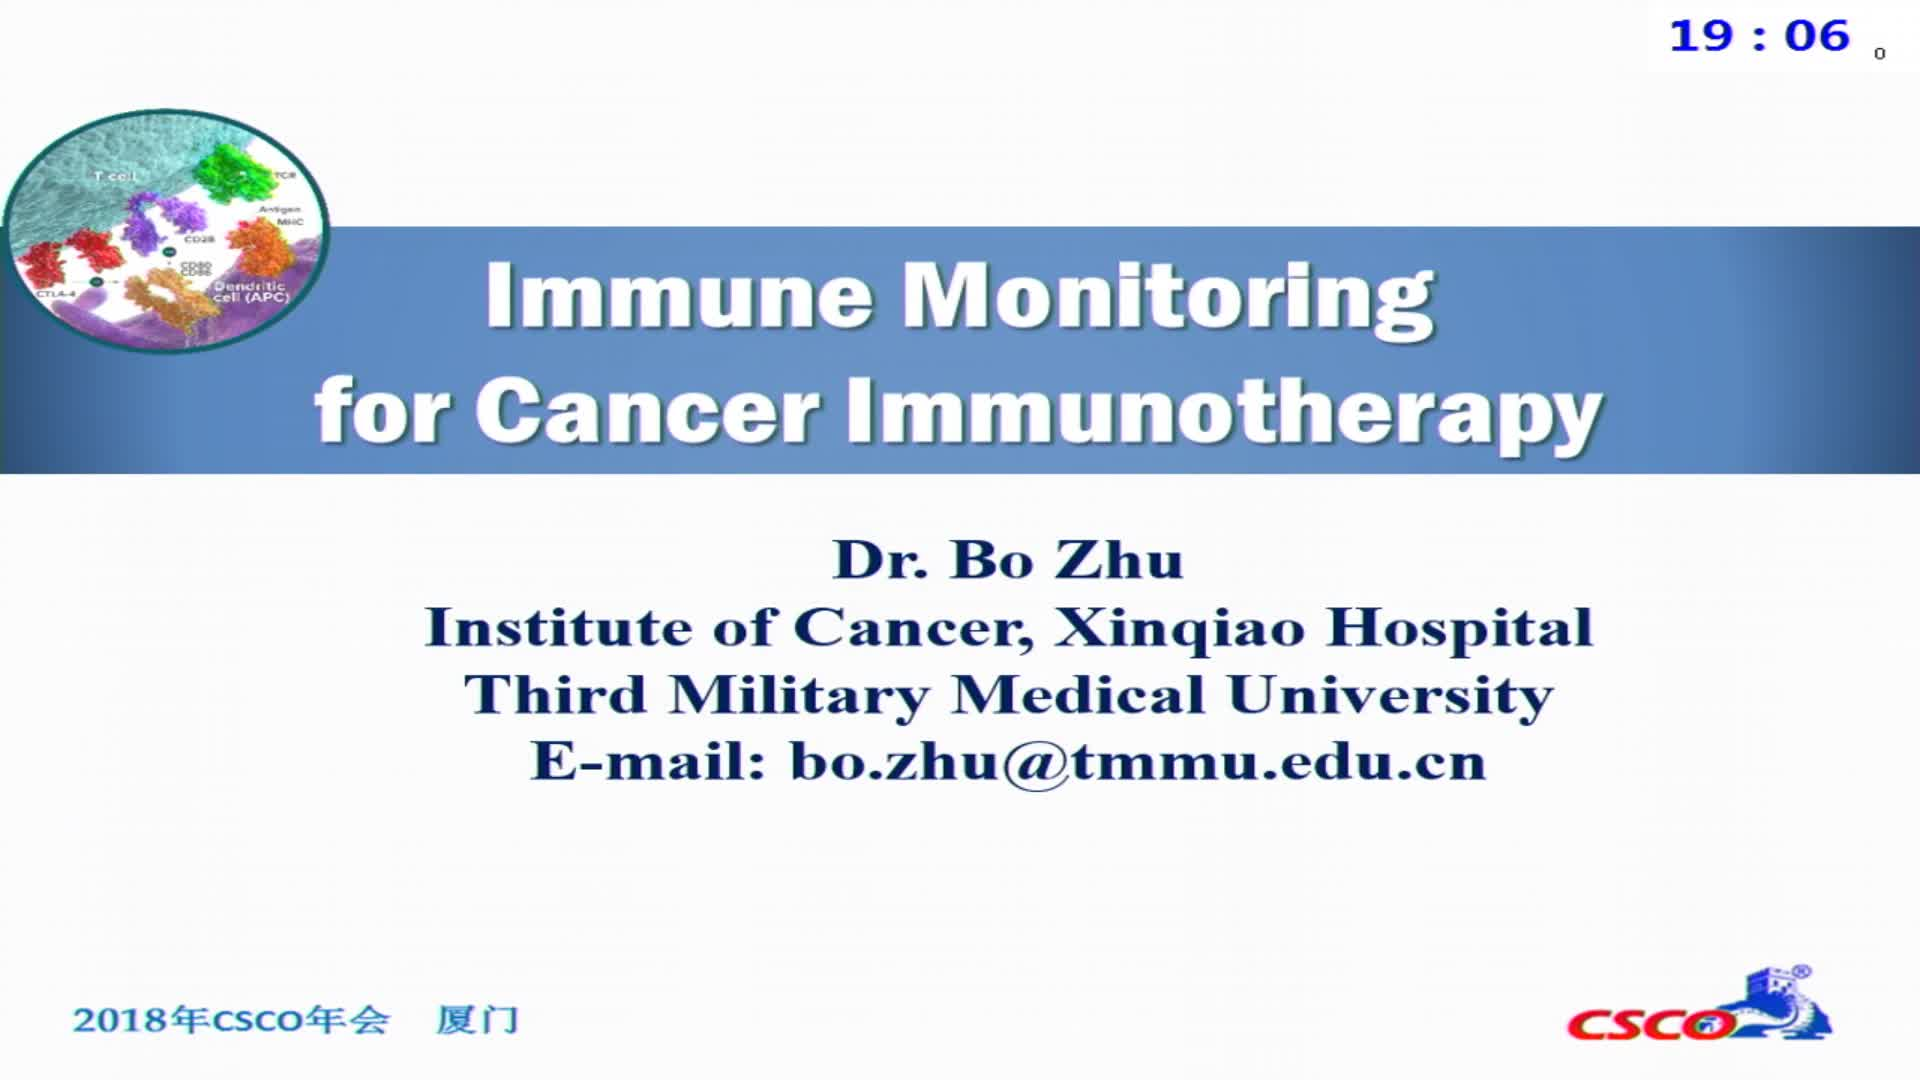 Immune monitoring for Cancer Immunotherapy